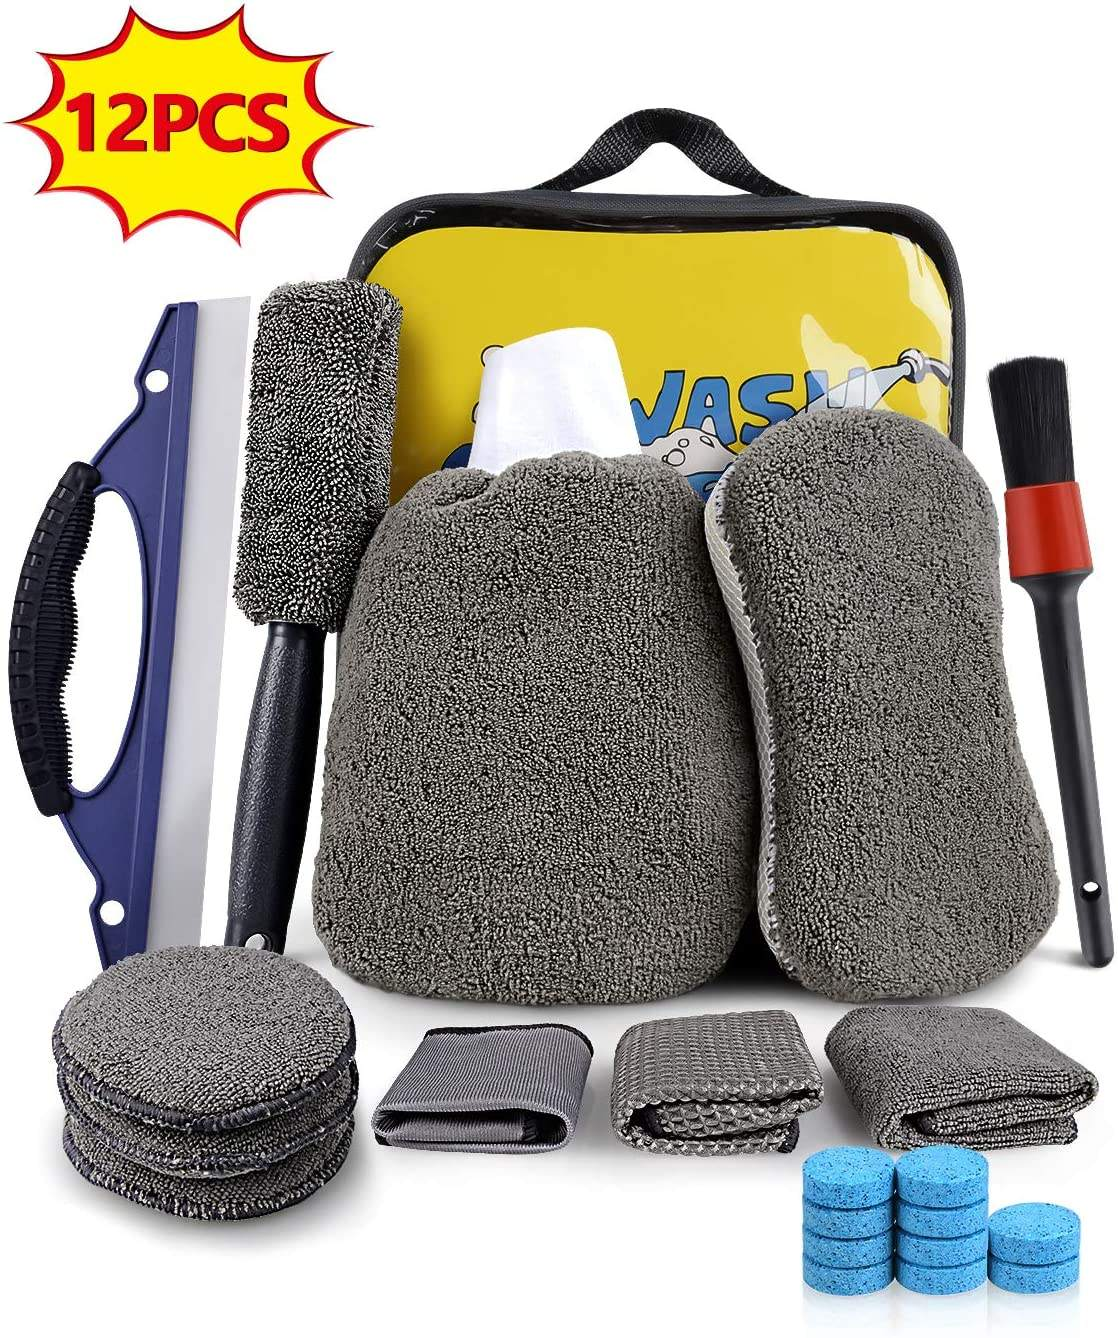 Fabrikant Wasstraat Kit Cleaning <span class=keywords><strong>Set</strong></span> Met Microfiber Handdoek Spons Mitt Wax Applicator Wiel Borstel Stofdoek